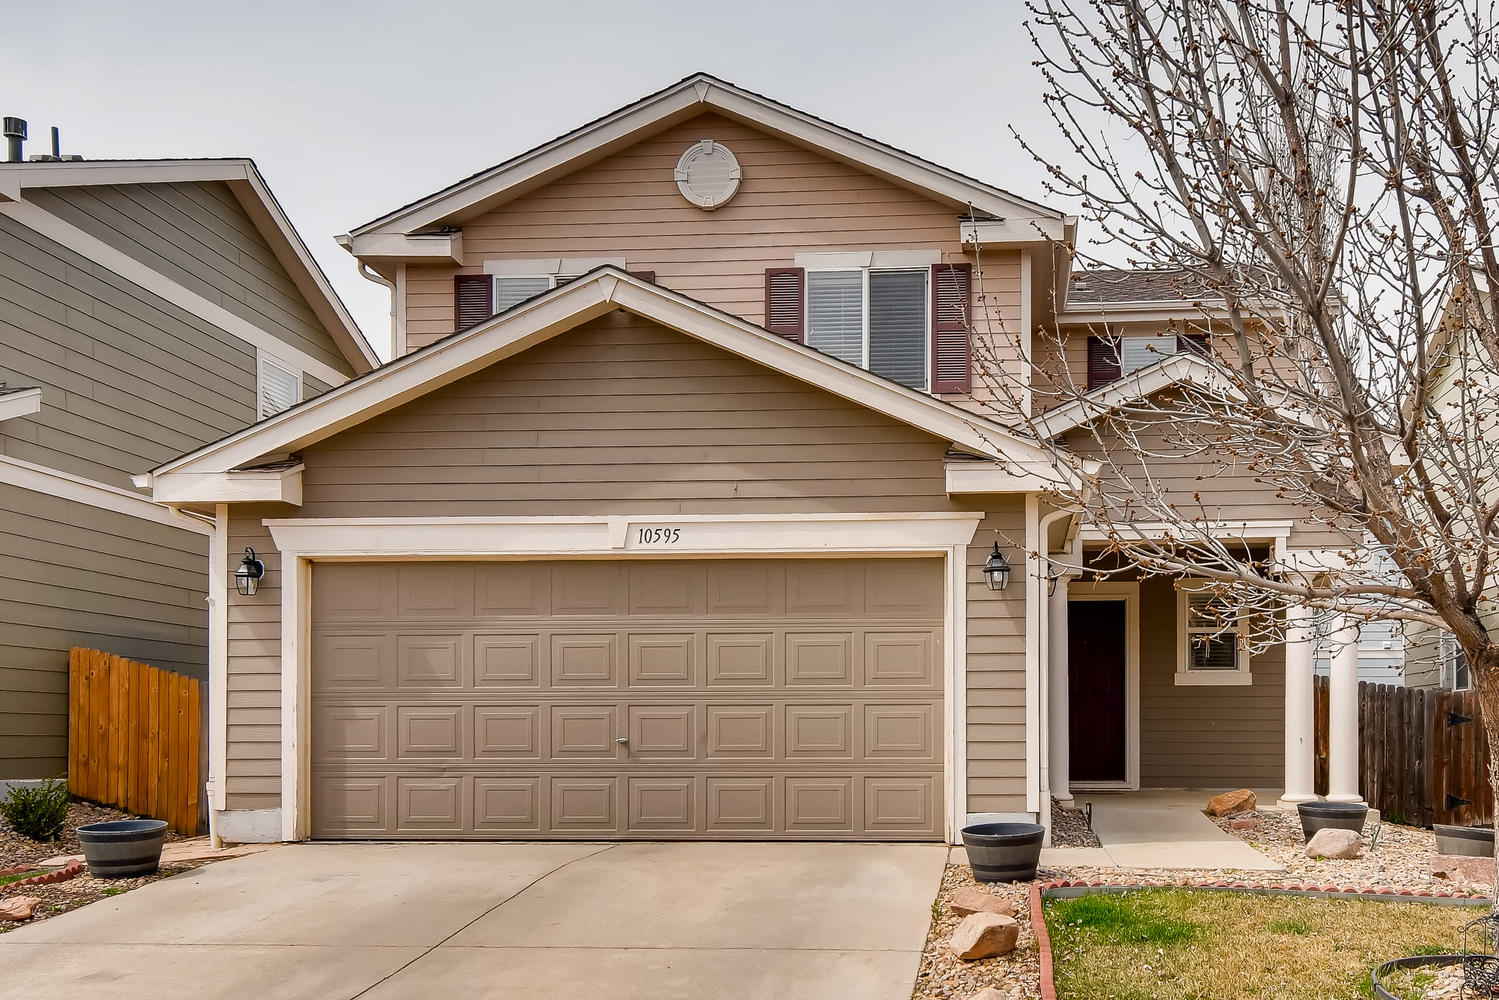 REAL ESTATE LISTING: 10595 Forester Pl Longmont CO Exterior Front